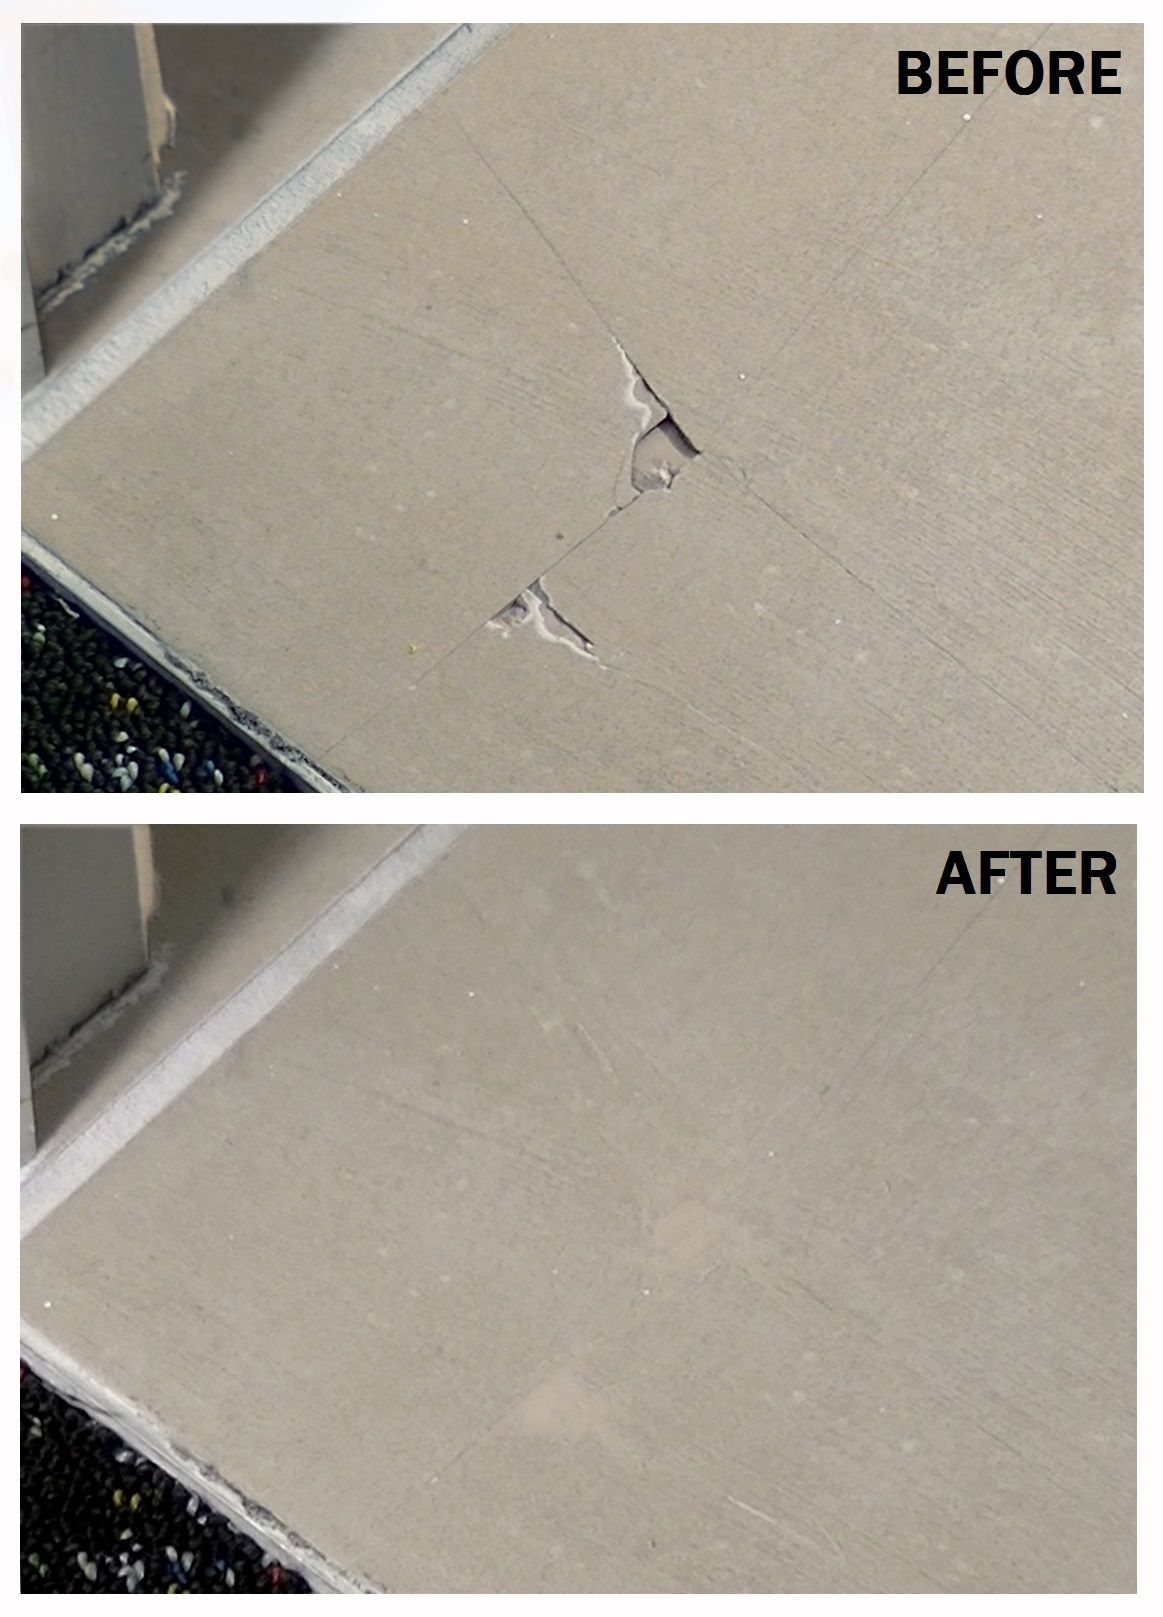 A chipped tile before after using magicezy tile fix repair a chipped tile before after using magicezy tile fix dailygadgetfo Images